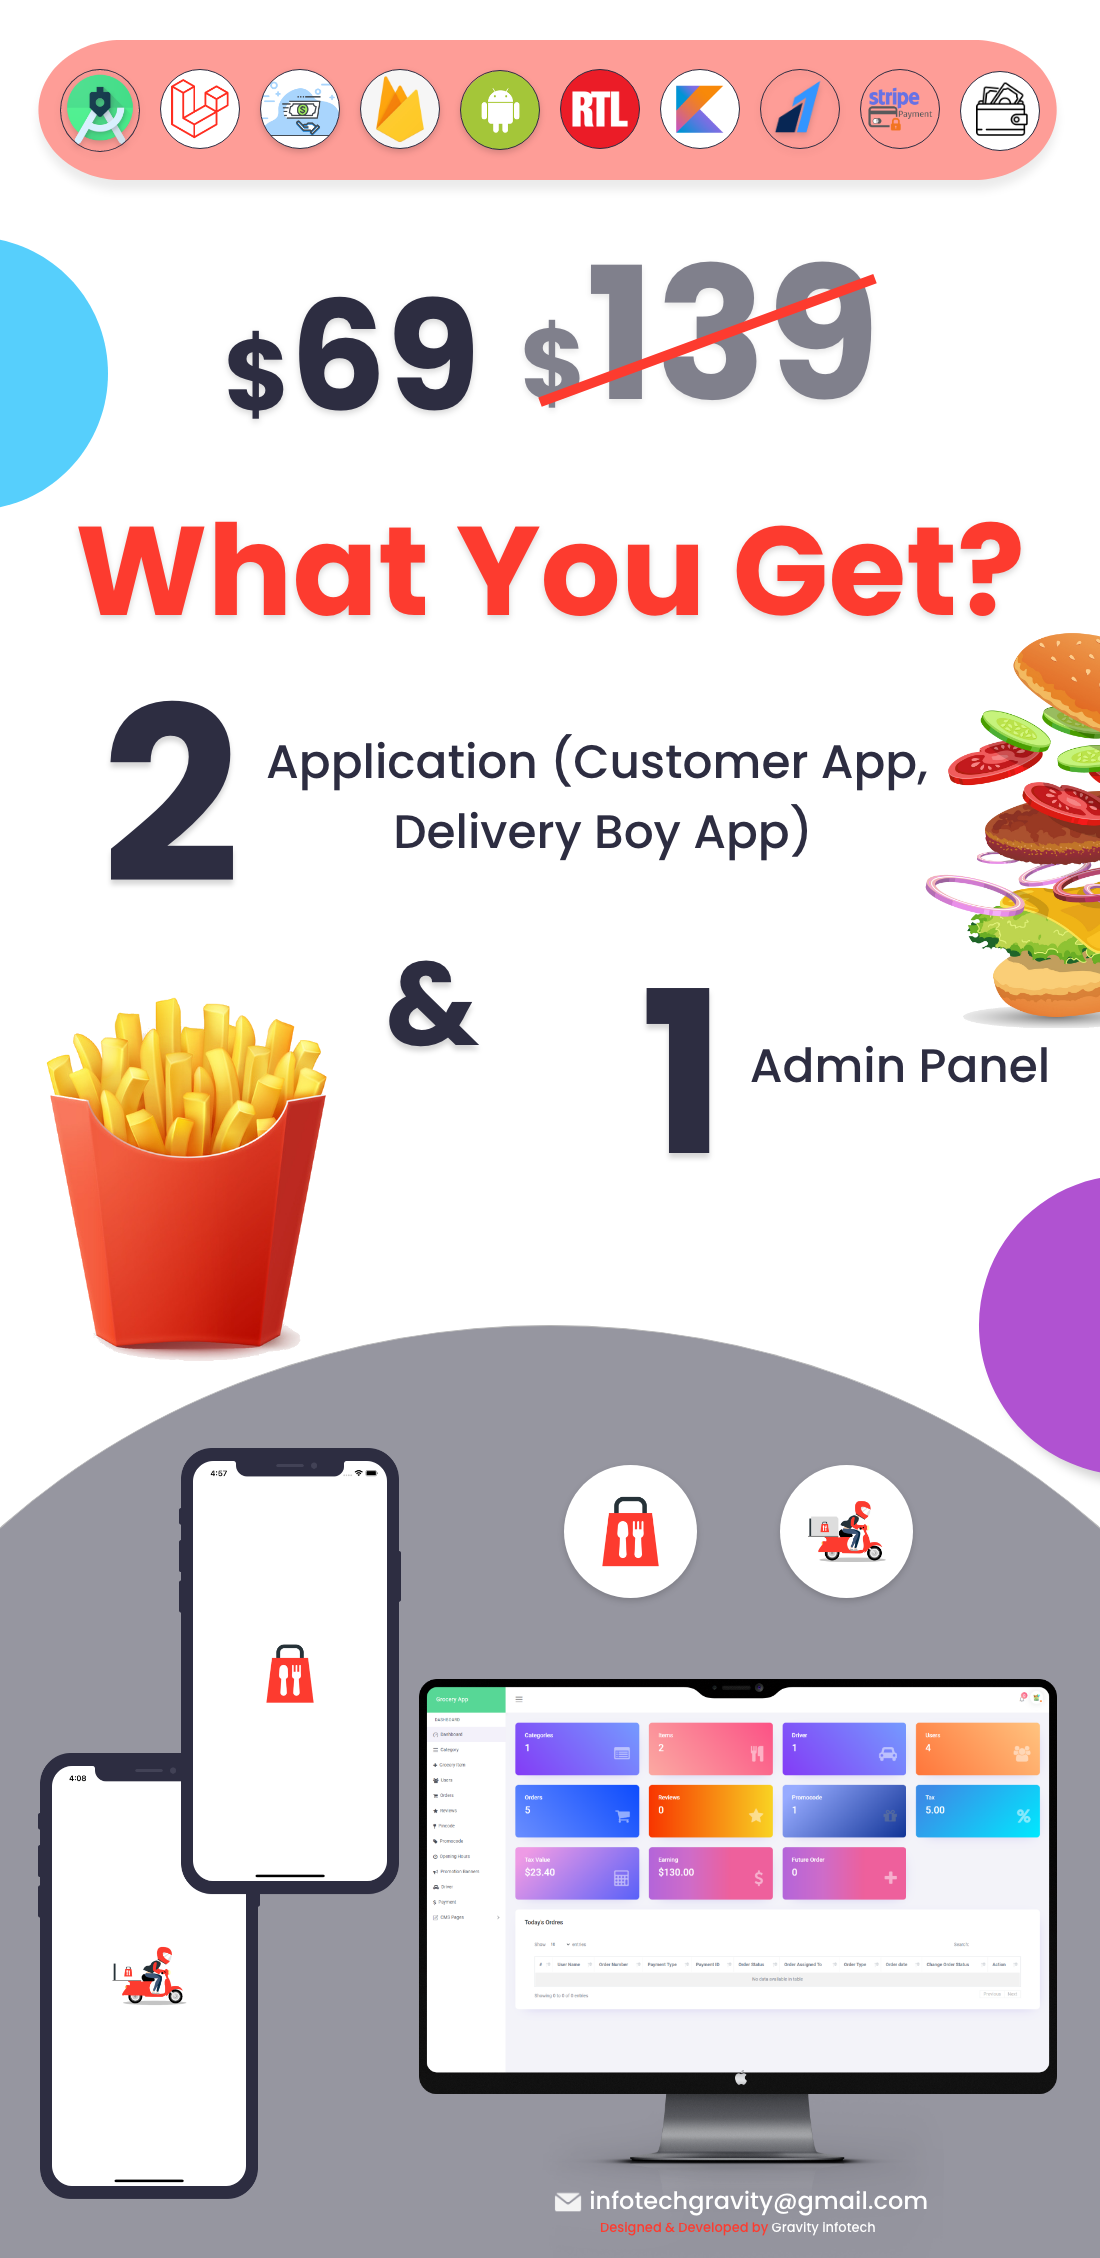 Single Restaurant Food Ordering Android User & Delivery Boy Apps with Backend Admin Panel - 3